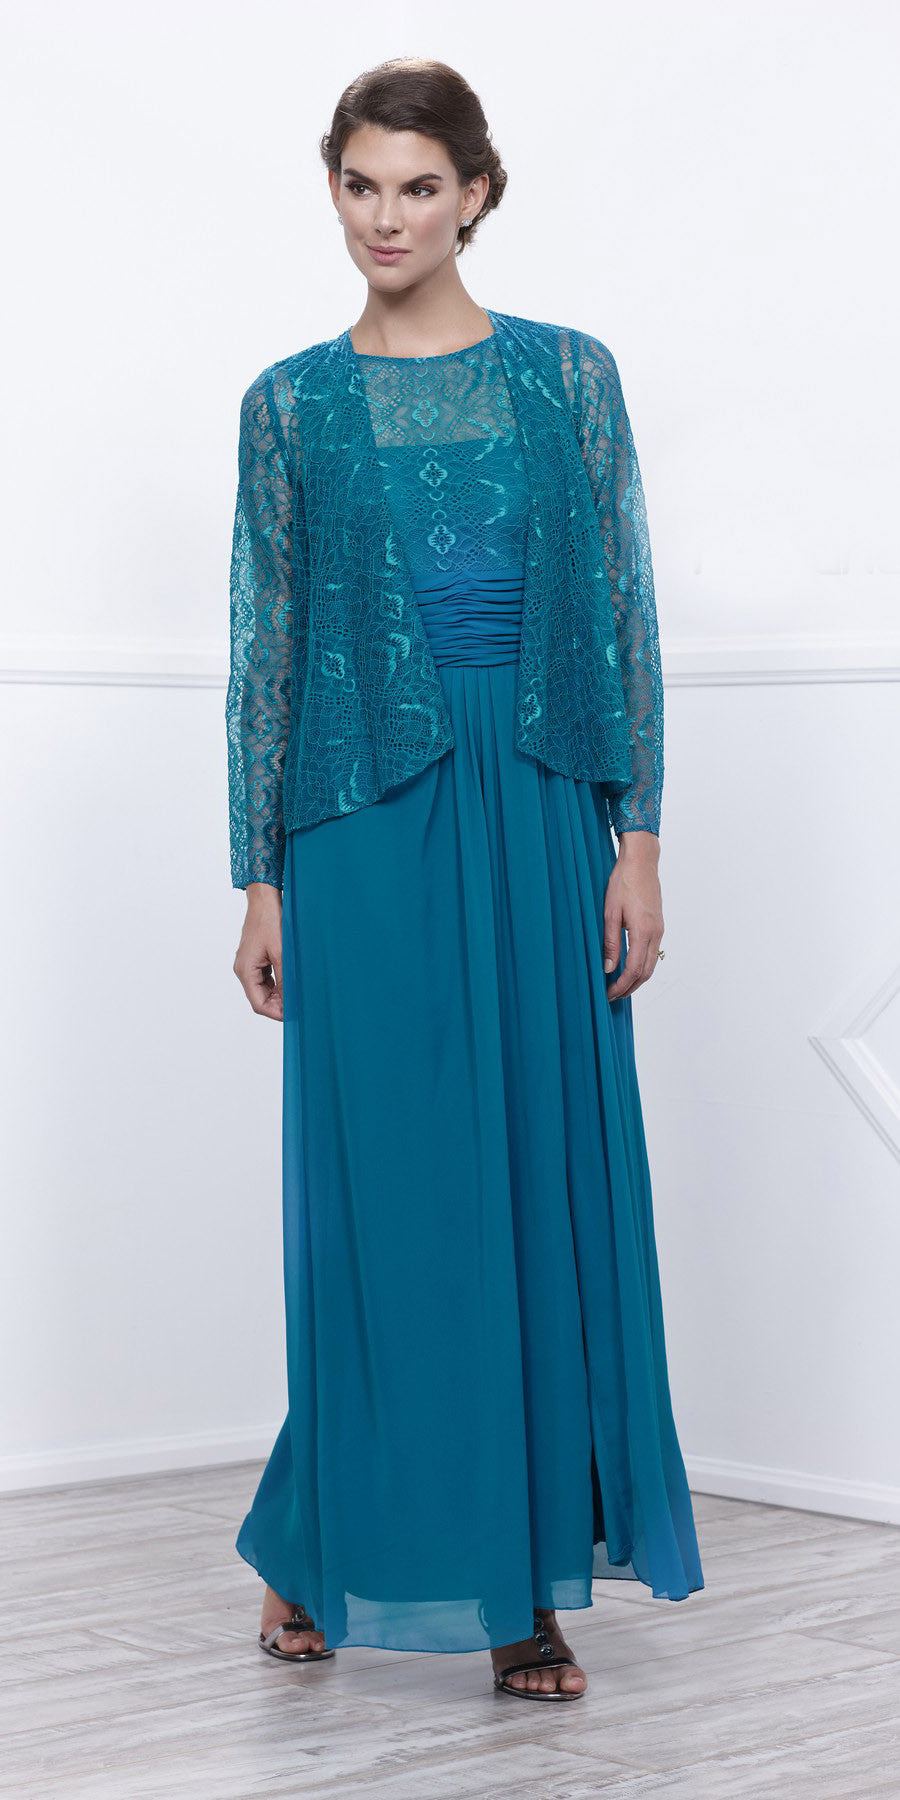 Teal Lace Bodice Bateau Neck Sleeveless Gown with Matching Bolero